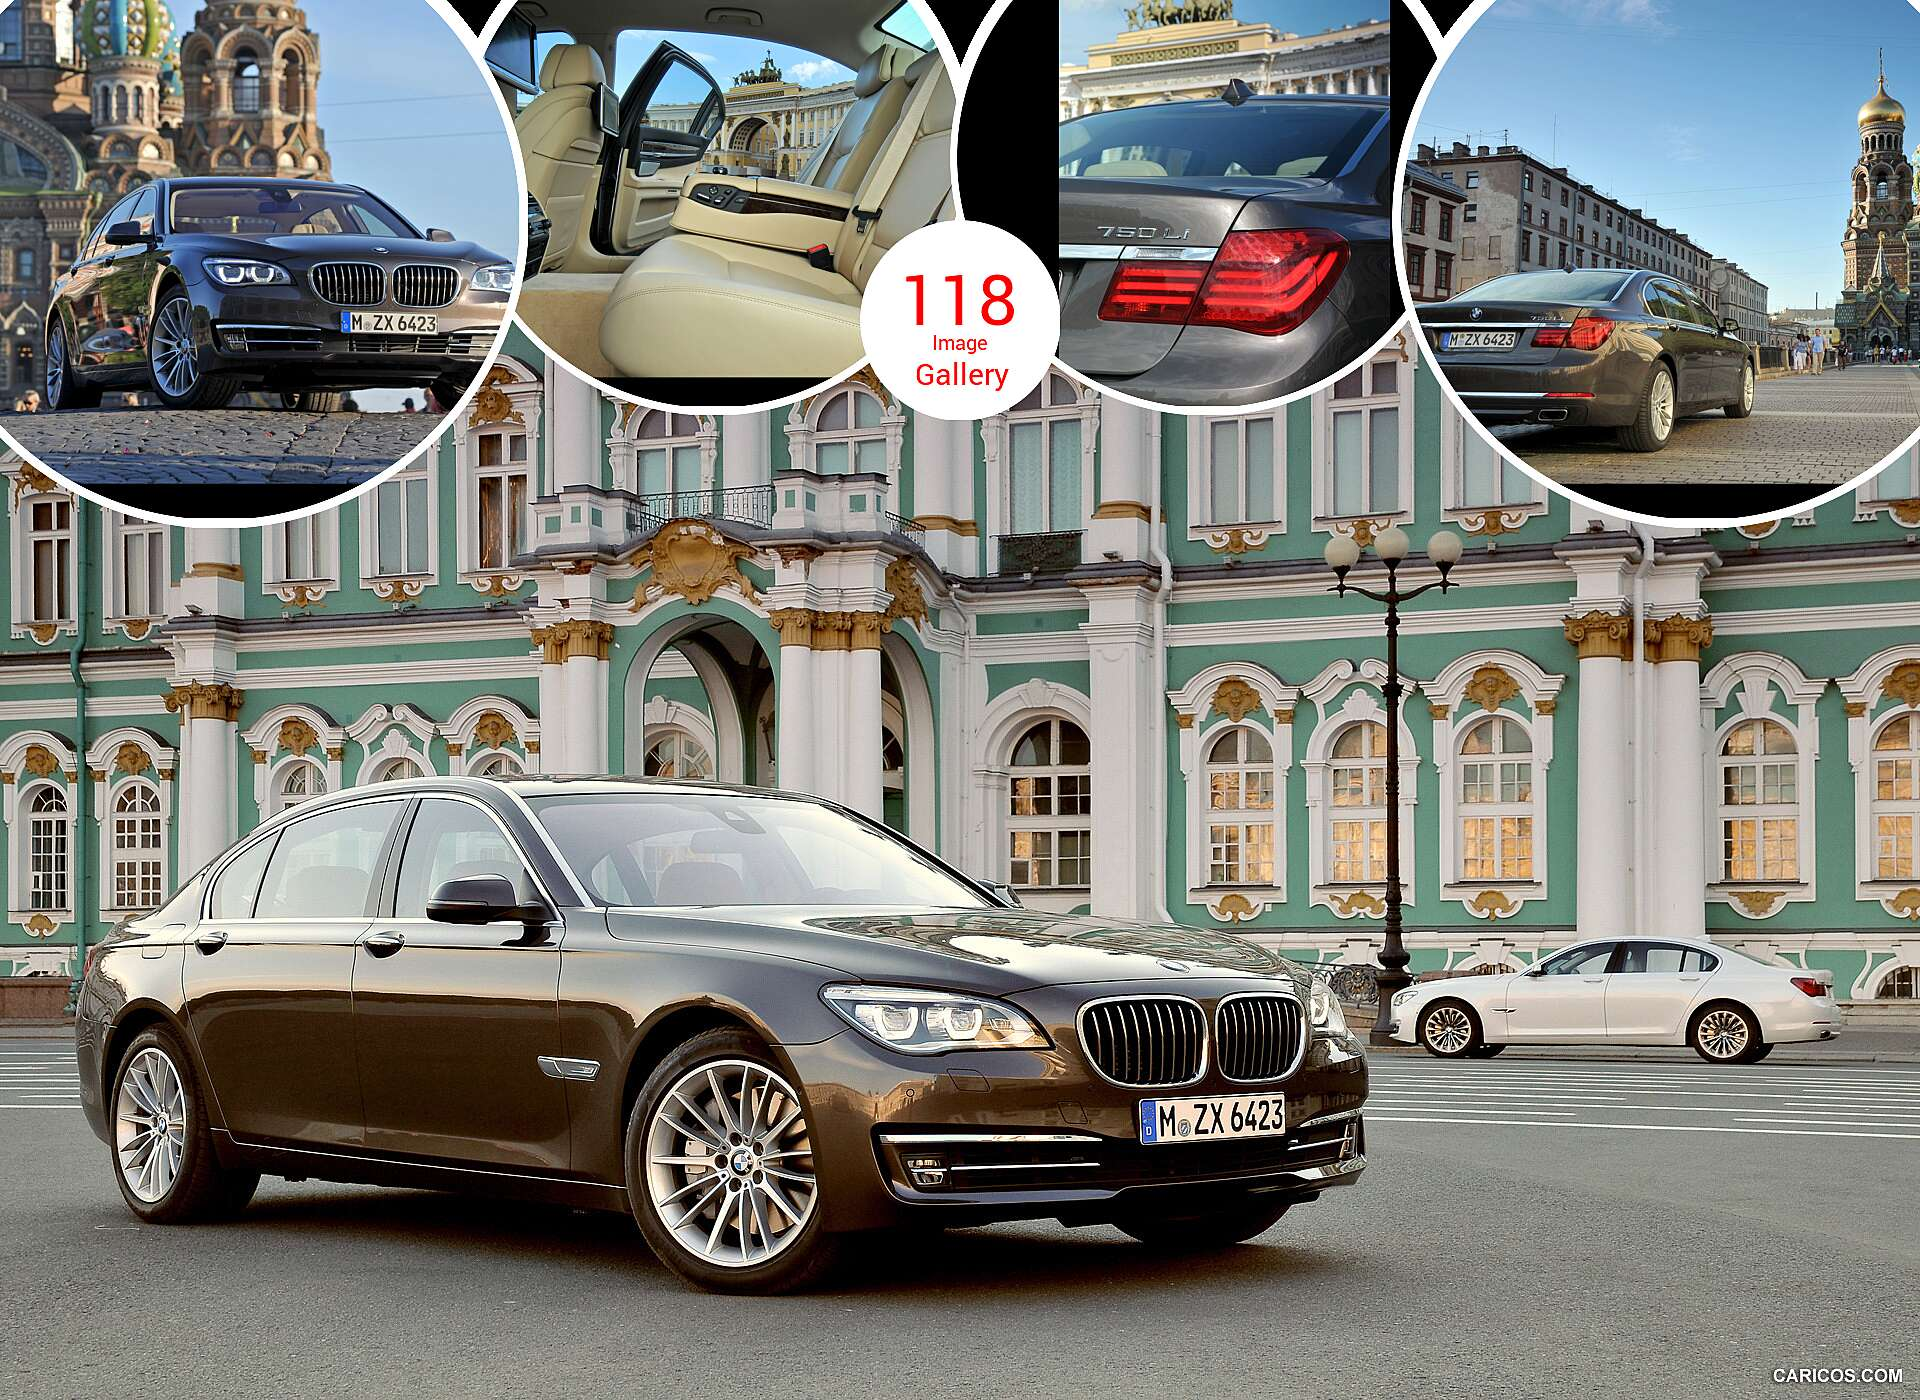 2013 BMW 7-Series Long Wheelbase